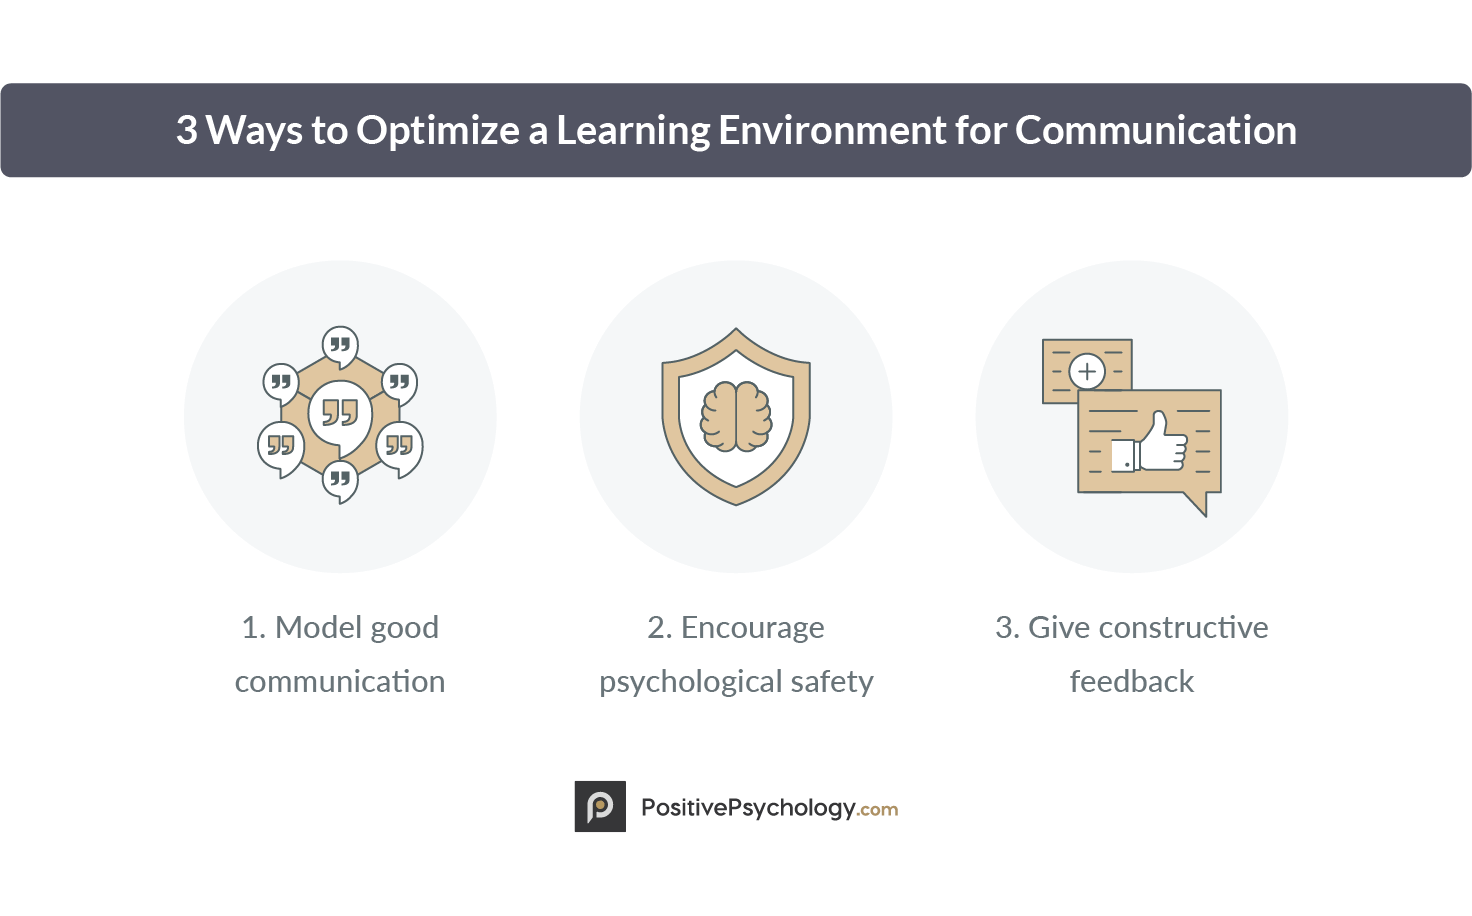 3 Ways to Optimize a Learning Environment for Communication